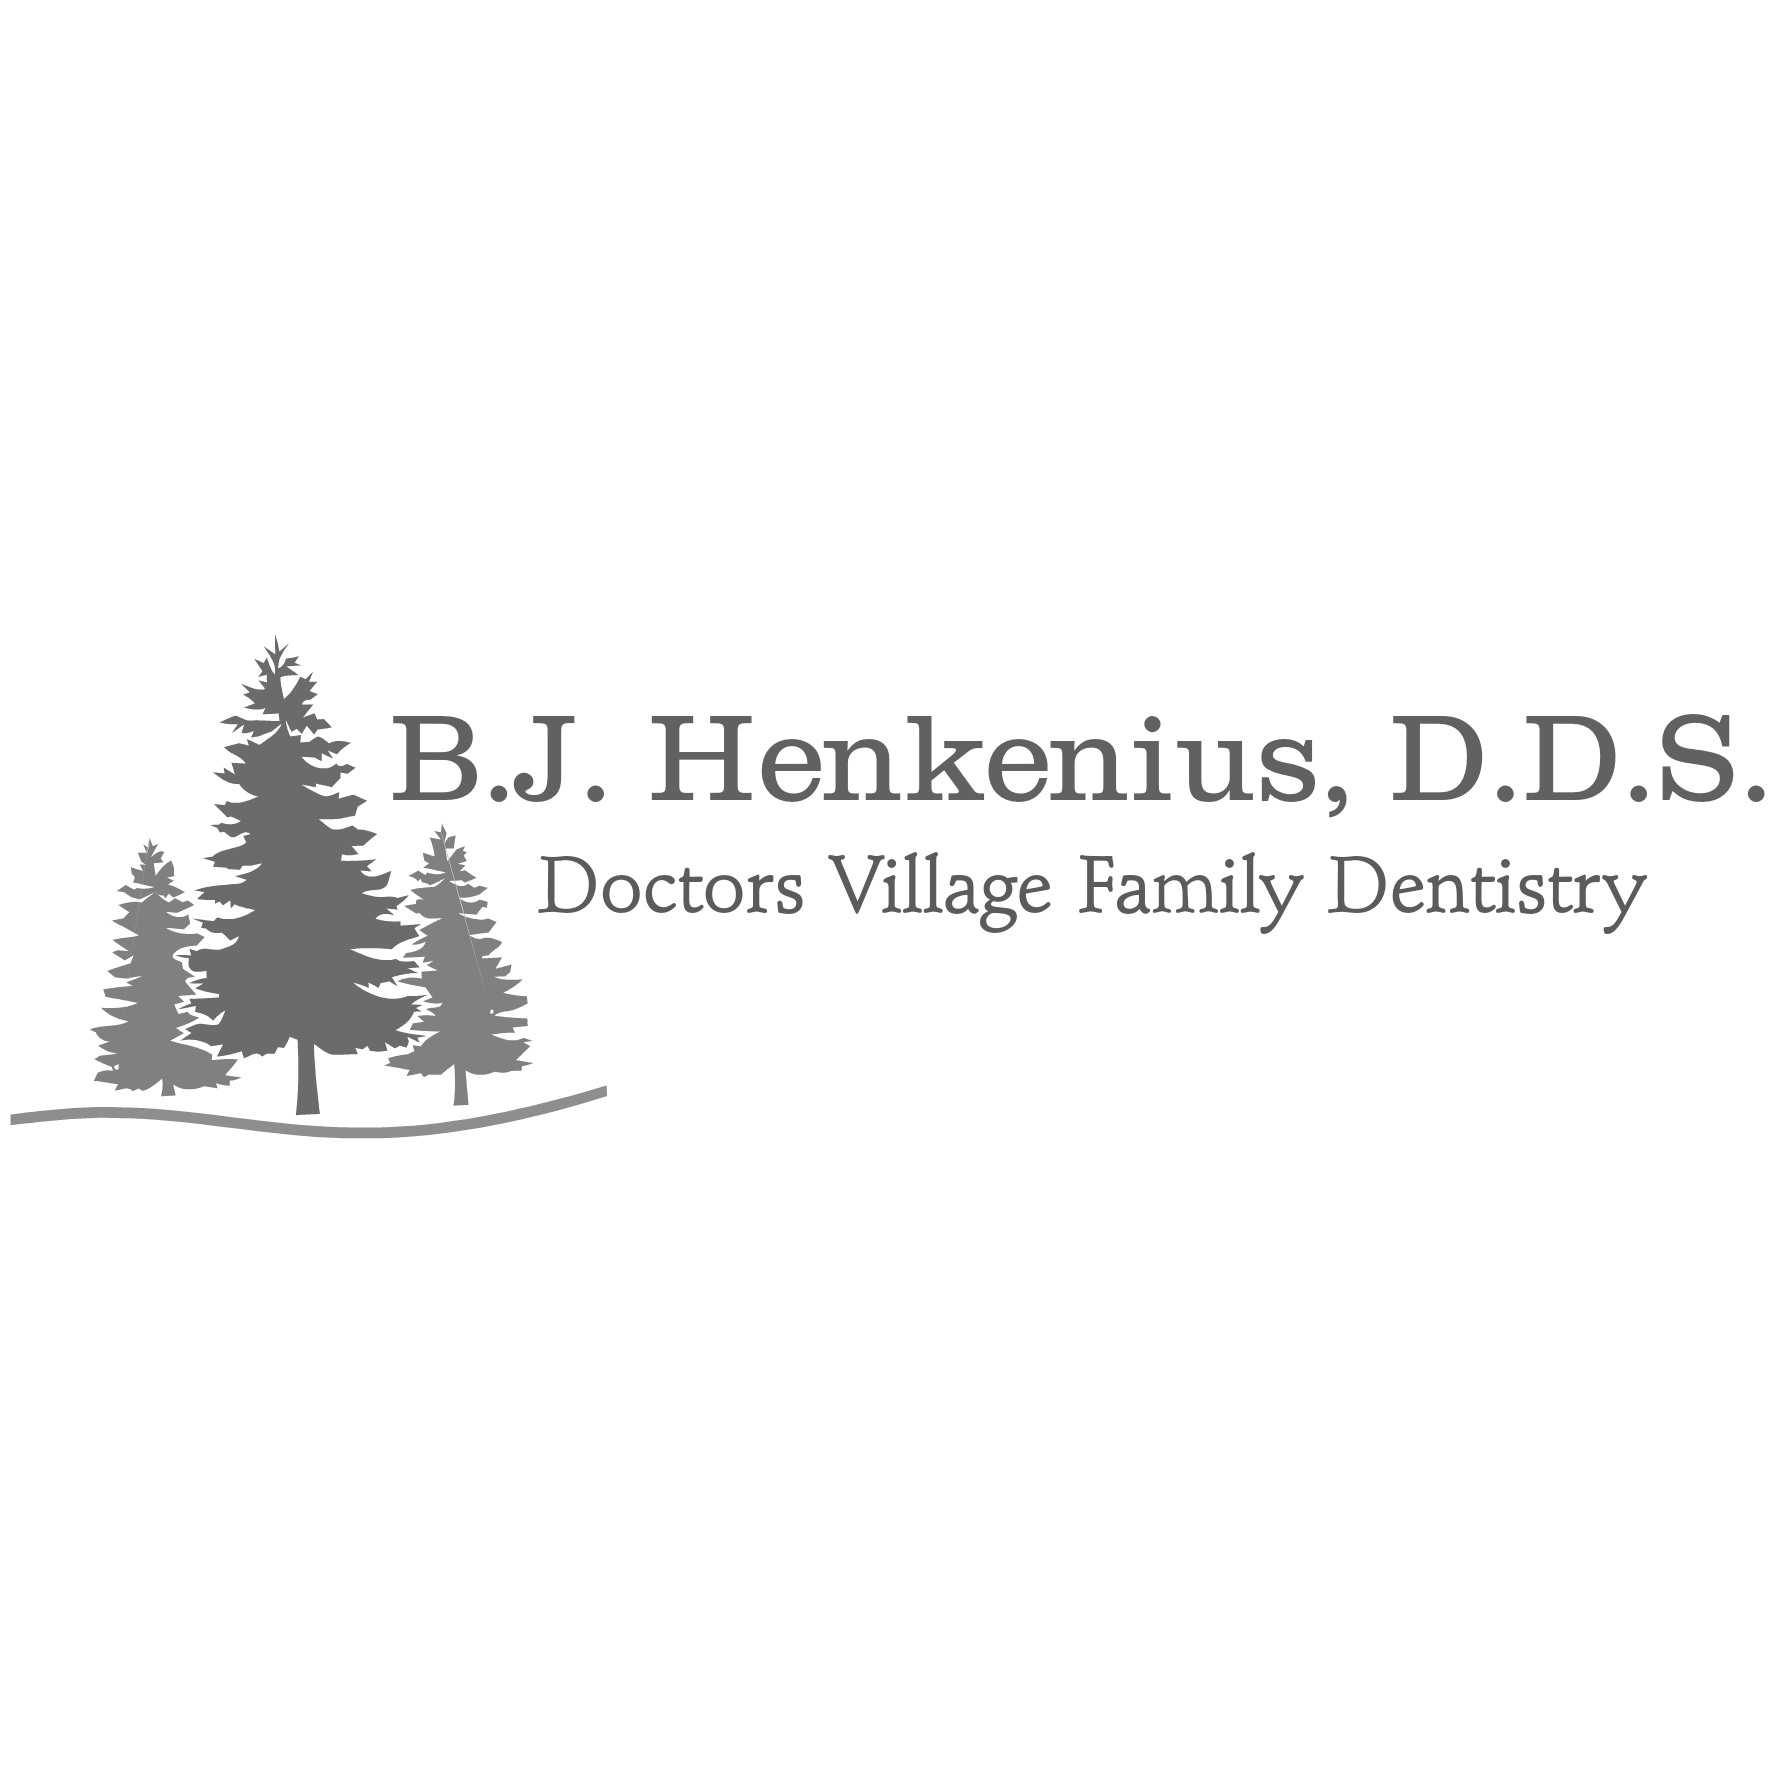 Bradley Henkenius DDS Doctors Village Family Dentistry